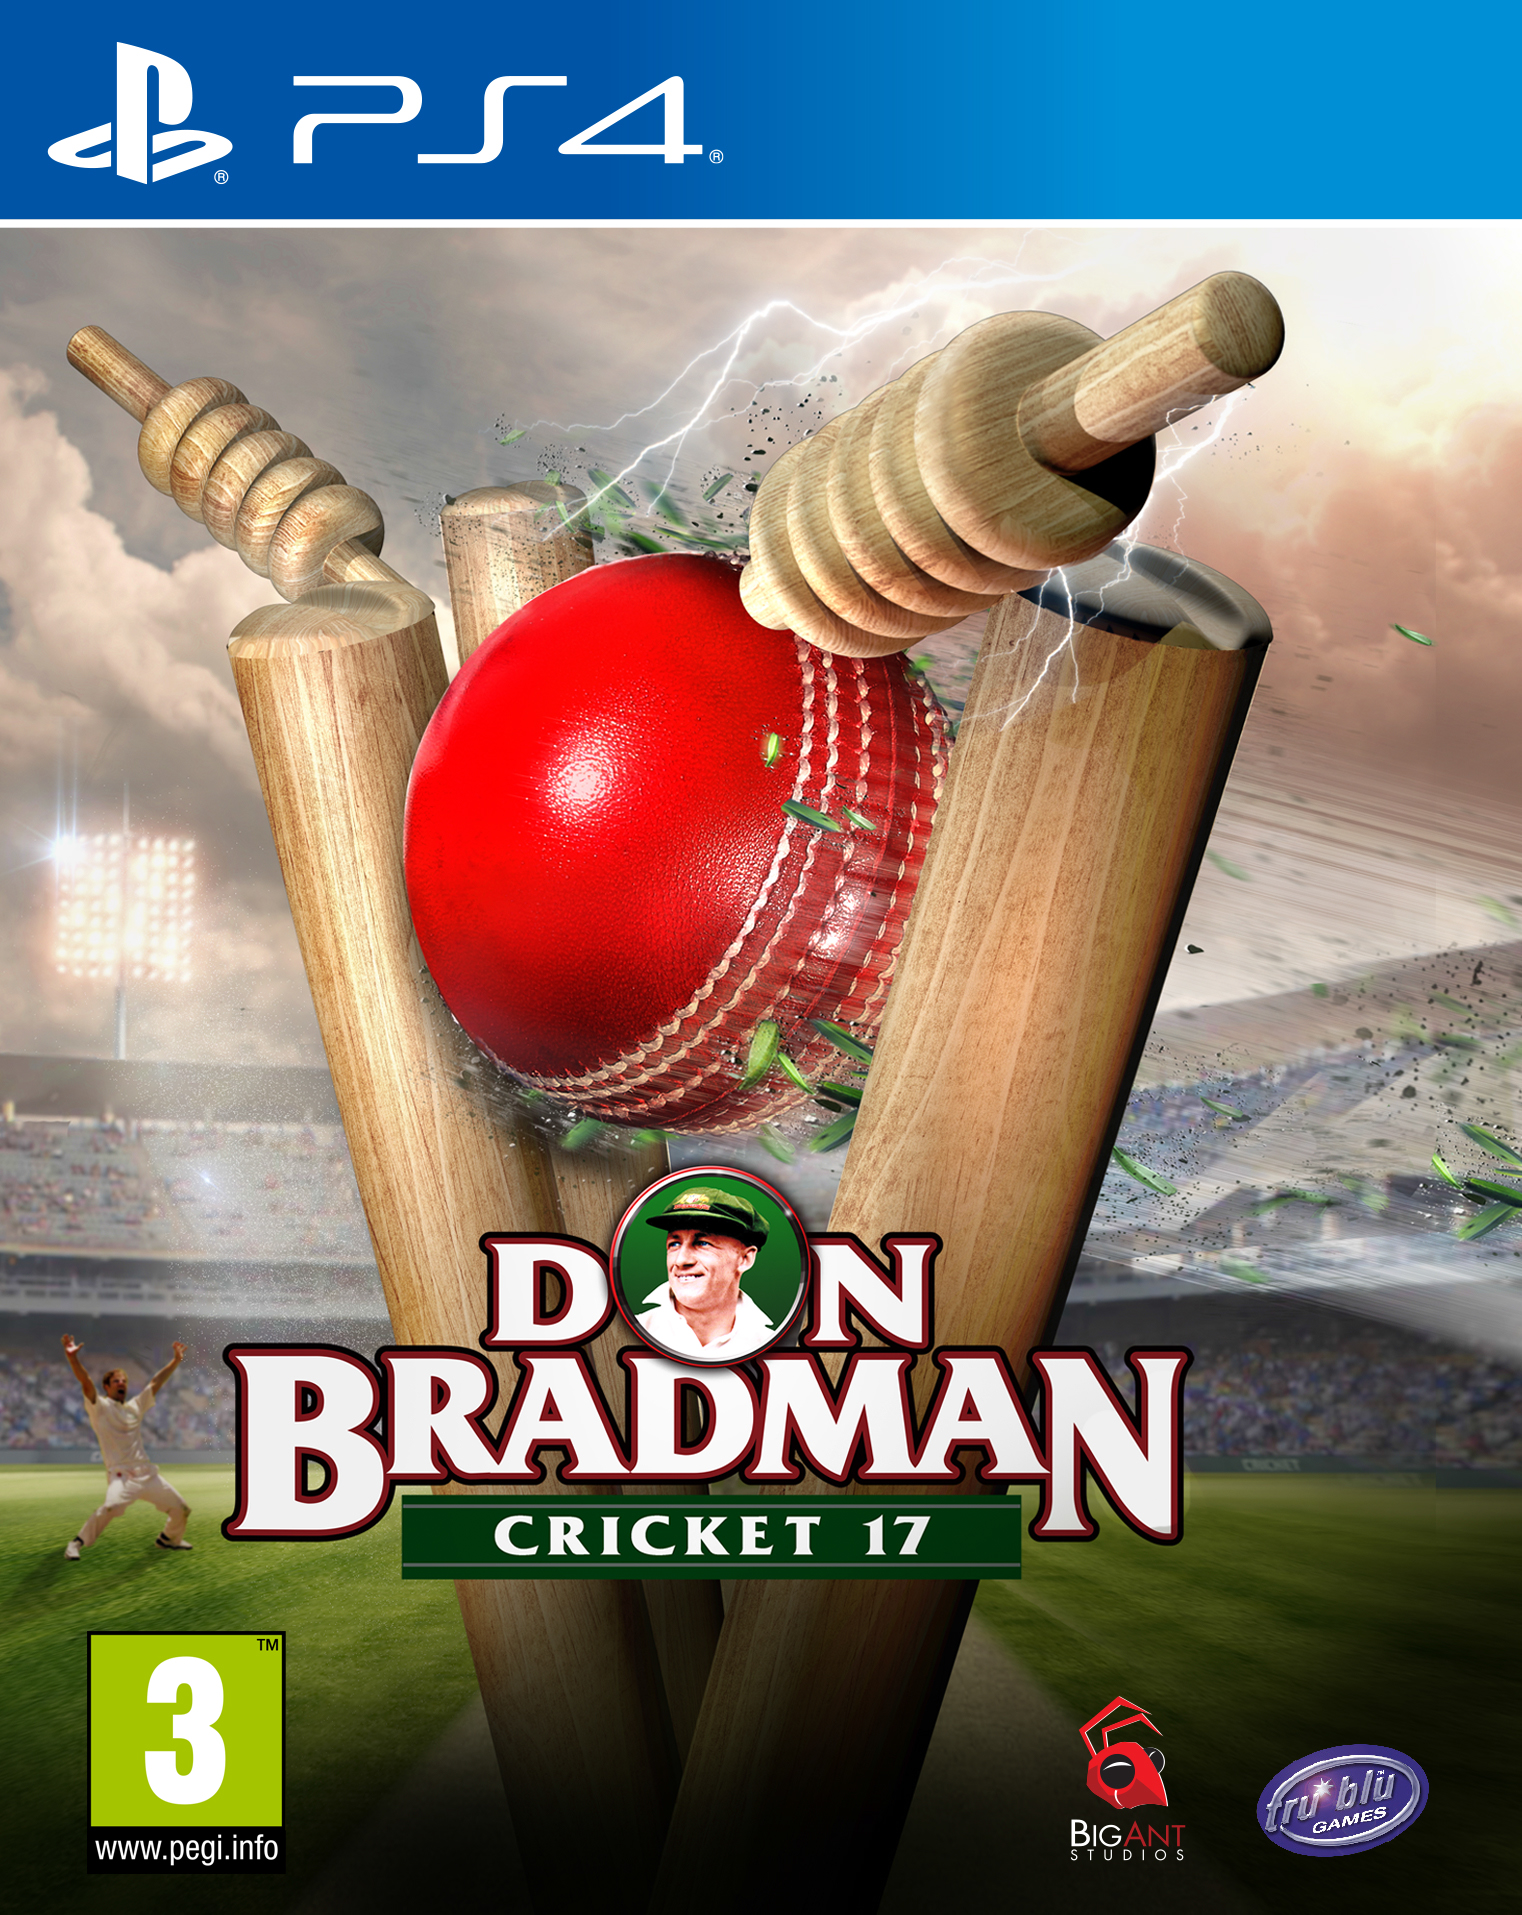 Don Bradman Cricket 17 Free Download For PC [Latest]